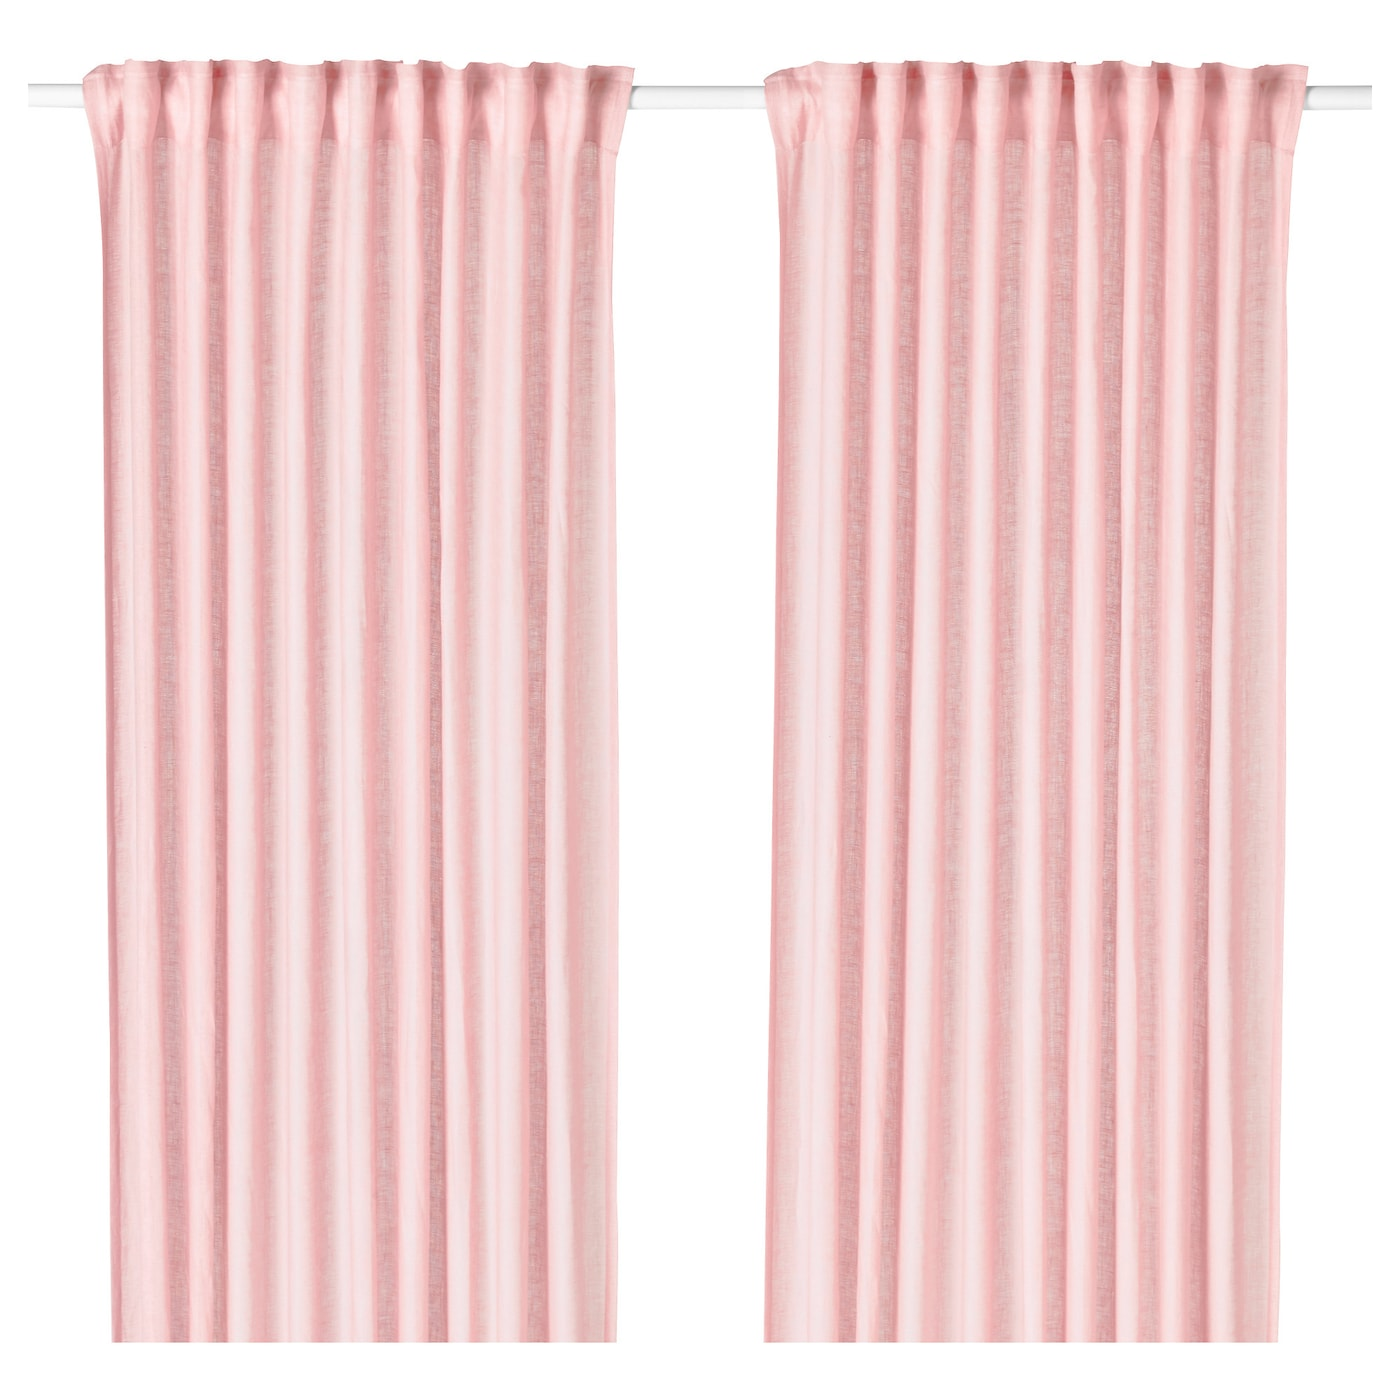 Childrens pink curtains 66 72 curtain menzilperde net for Ready made blinds ikea